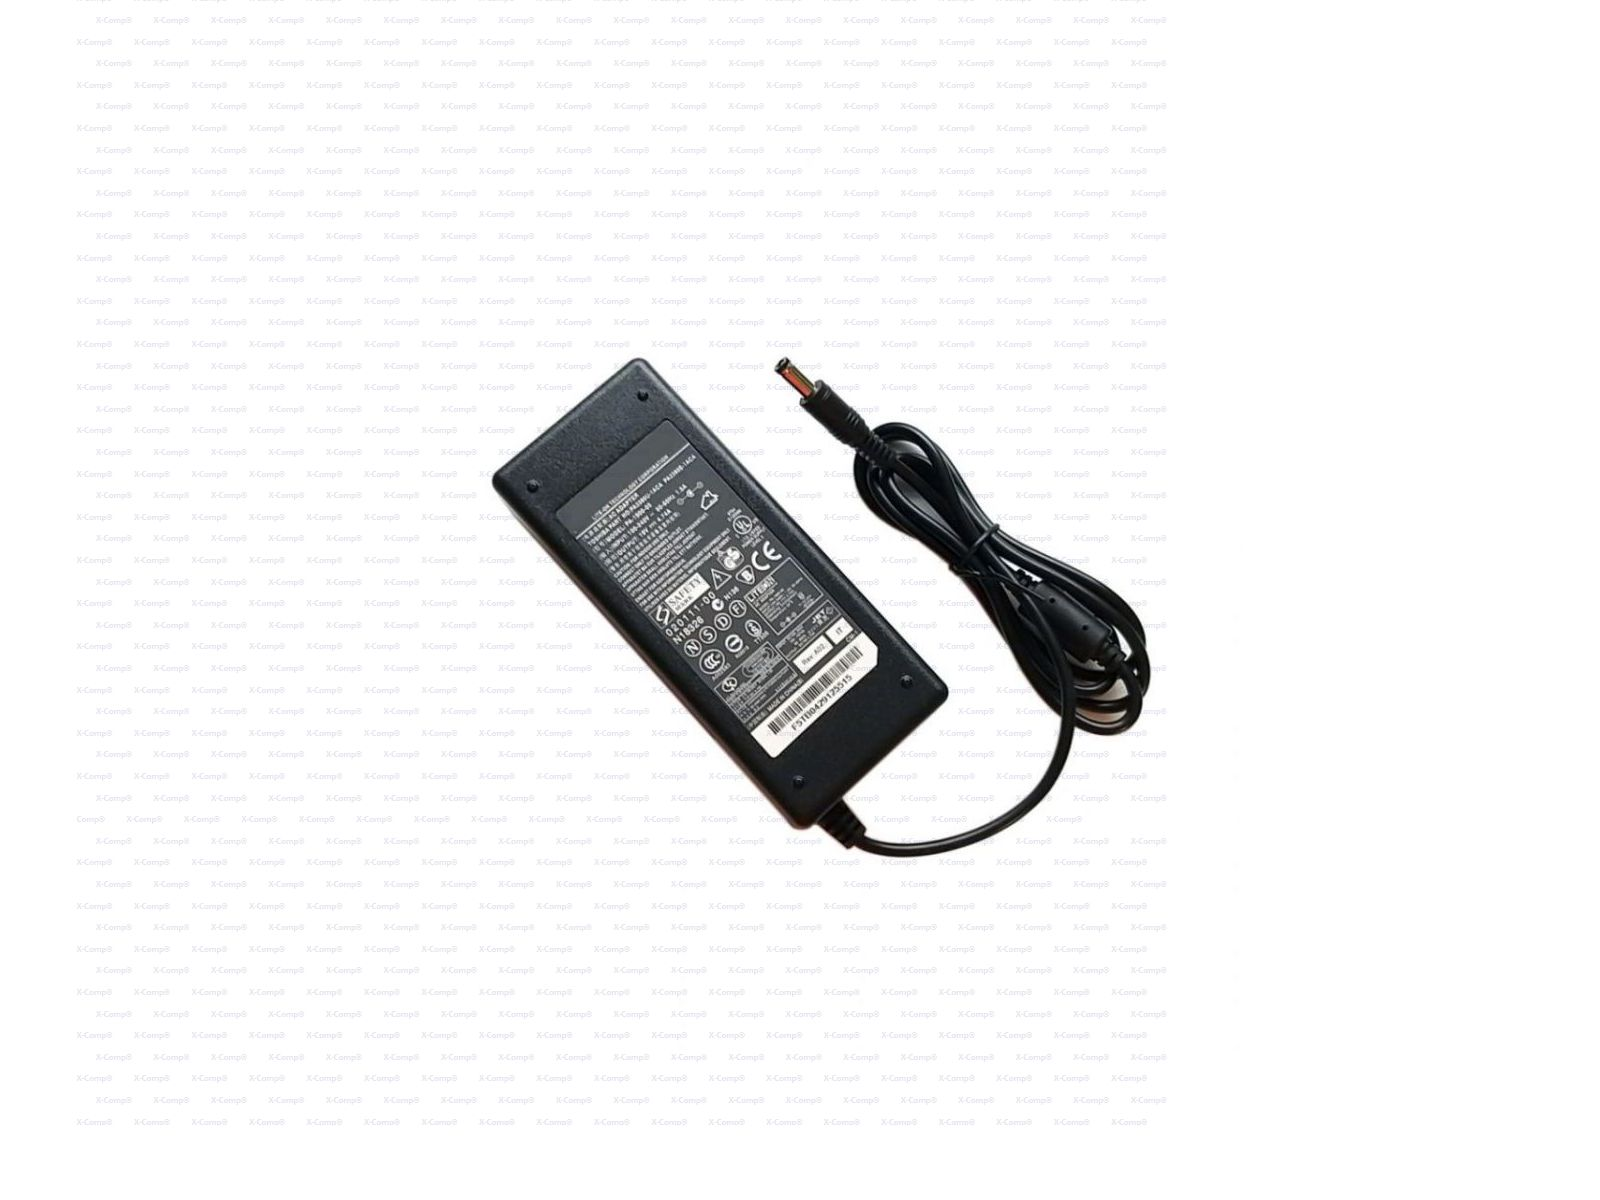 Adapter Ersatznetzteil MBA50012 19.5V 4.74A 90W 11/5.5/2.5mm für Asus X75VD-TY215H-BE